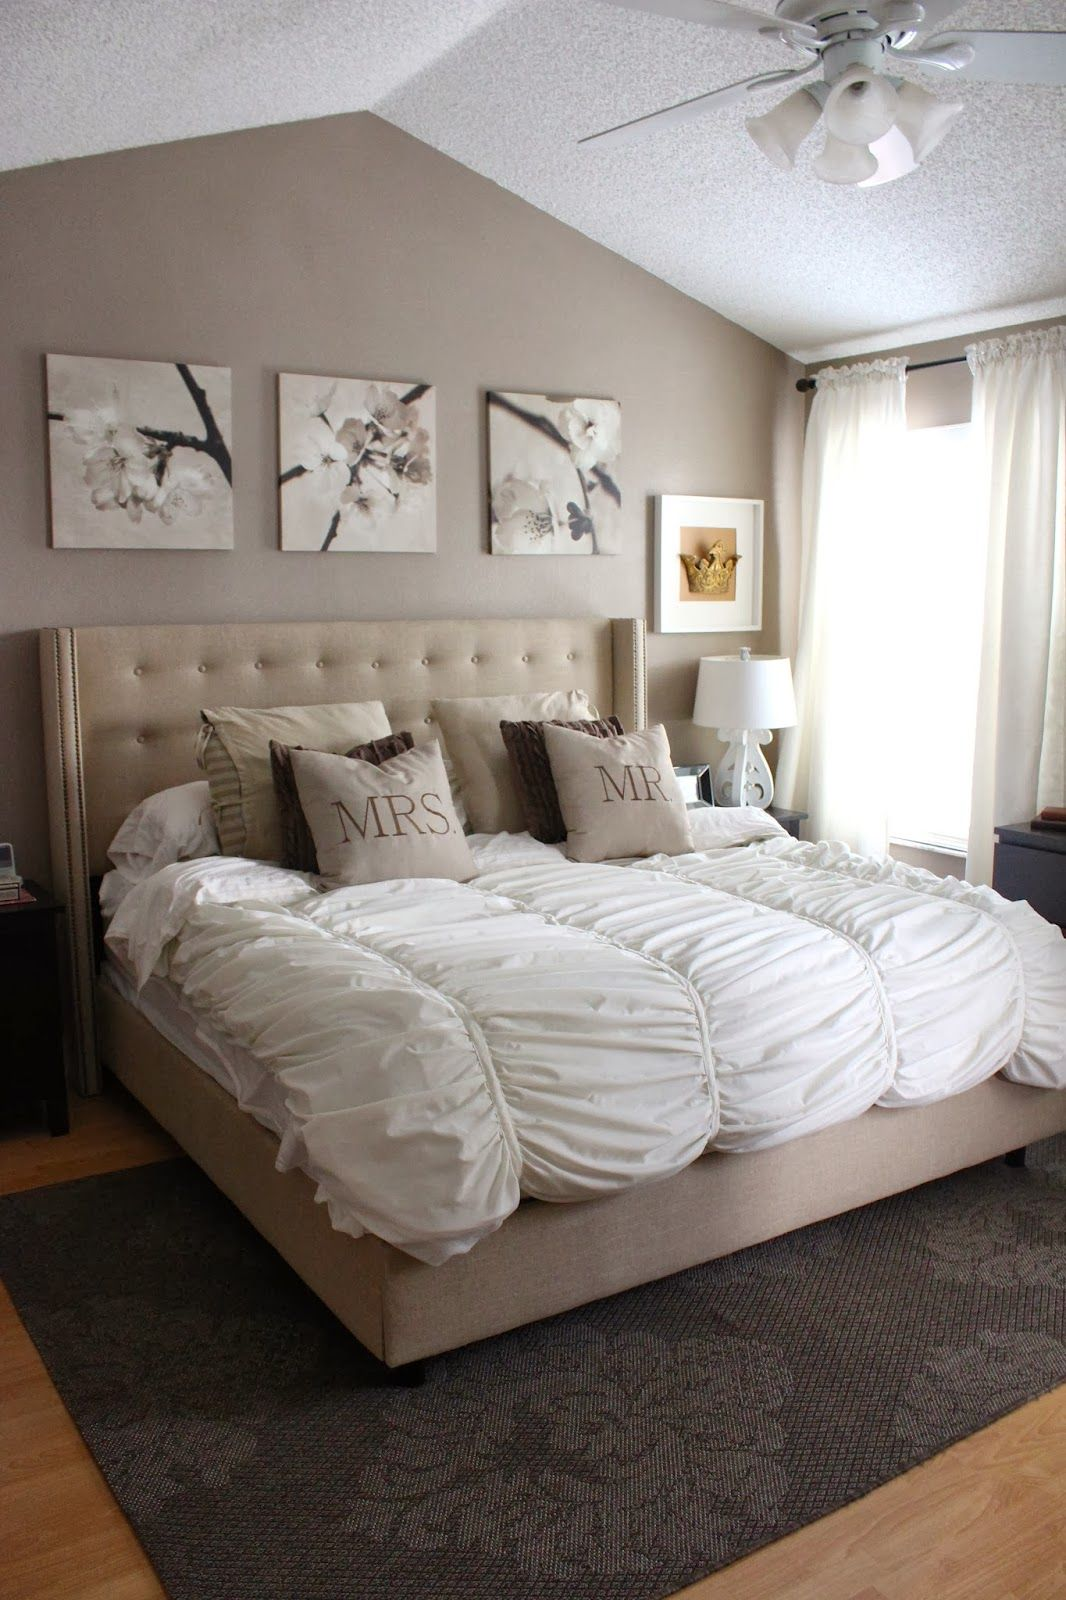 Oasis Bedroom Furniture How To Turn Your Bedroom Into A Stress Free Oasis Furniture